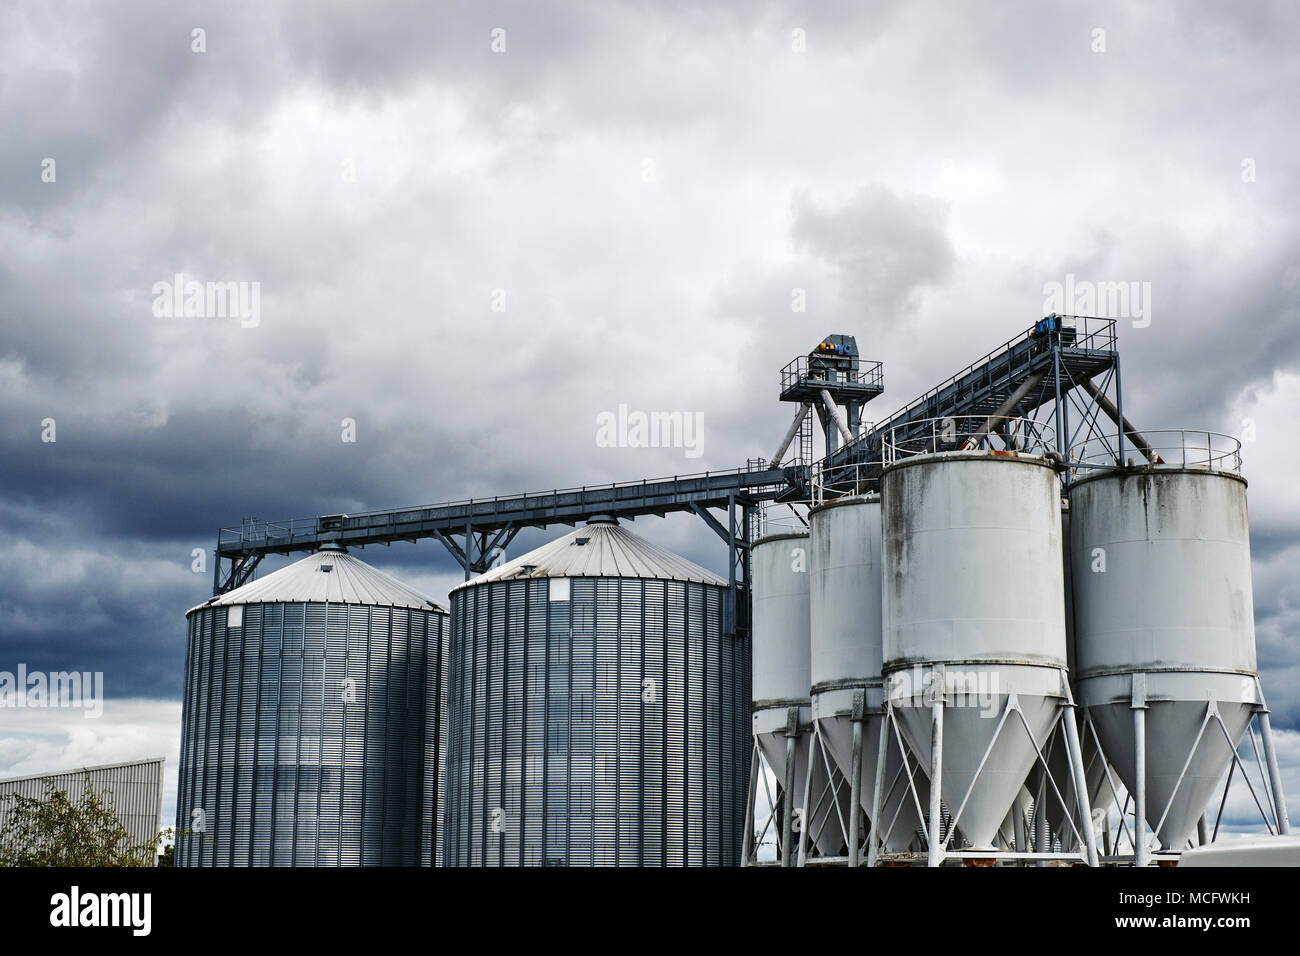 An agricultural grain silo - Stock Image